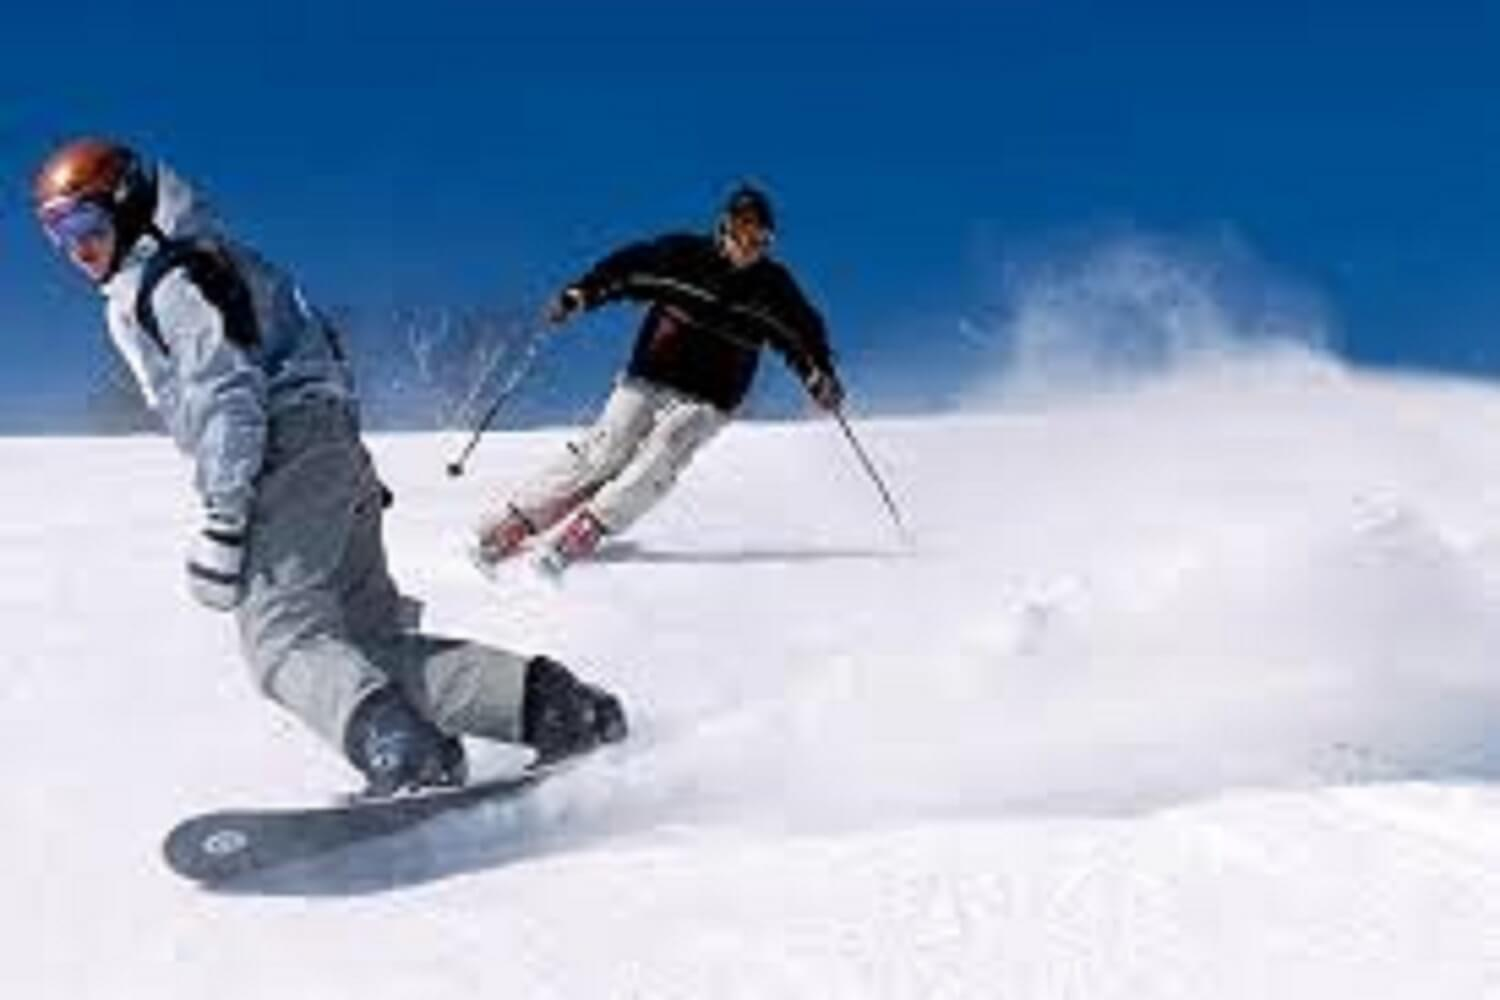 get-fit-ski-snowboard-winter